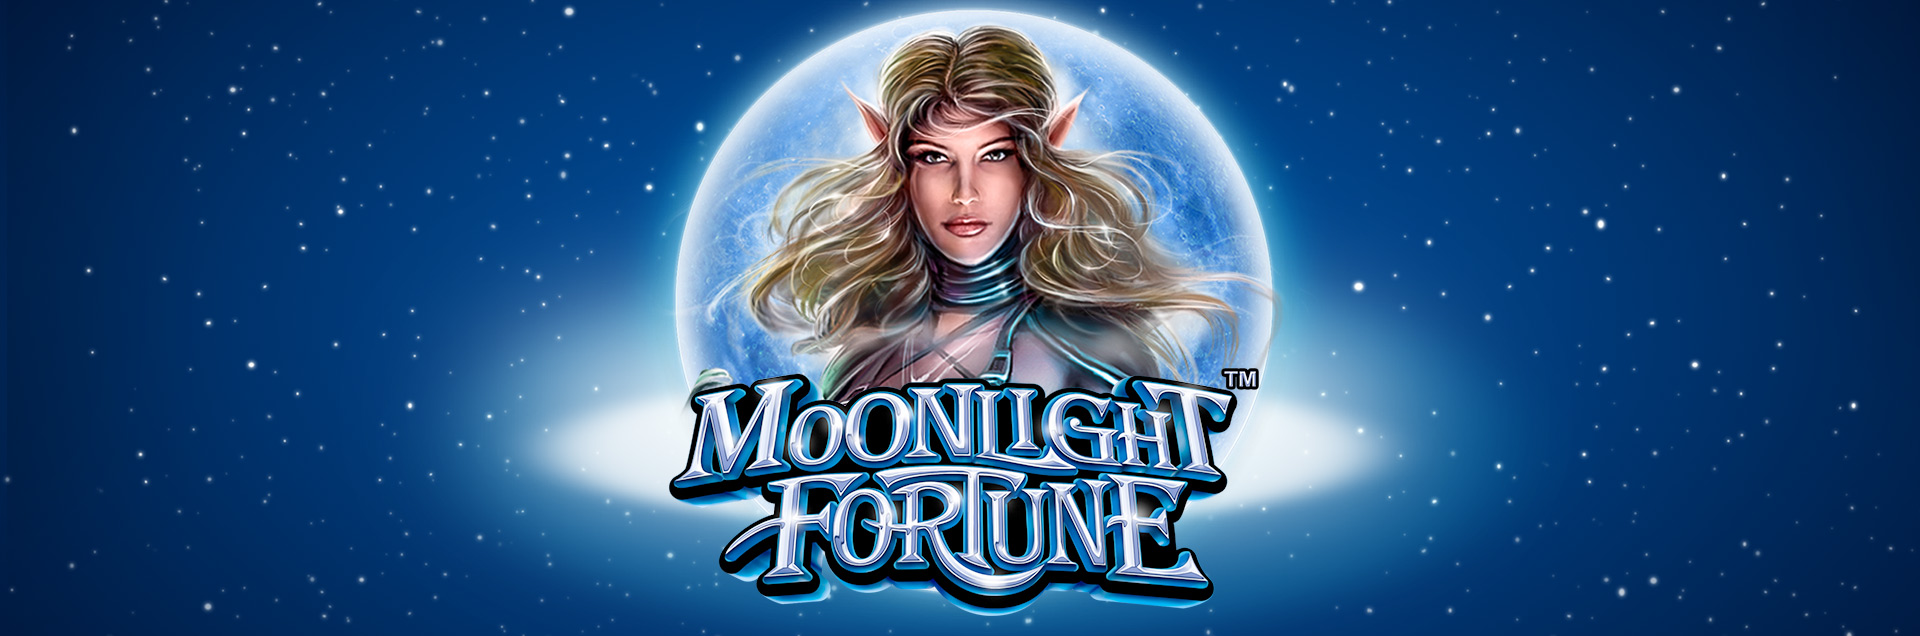 MoonlightFortune logo